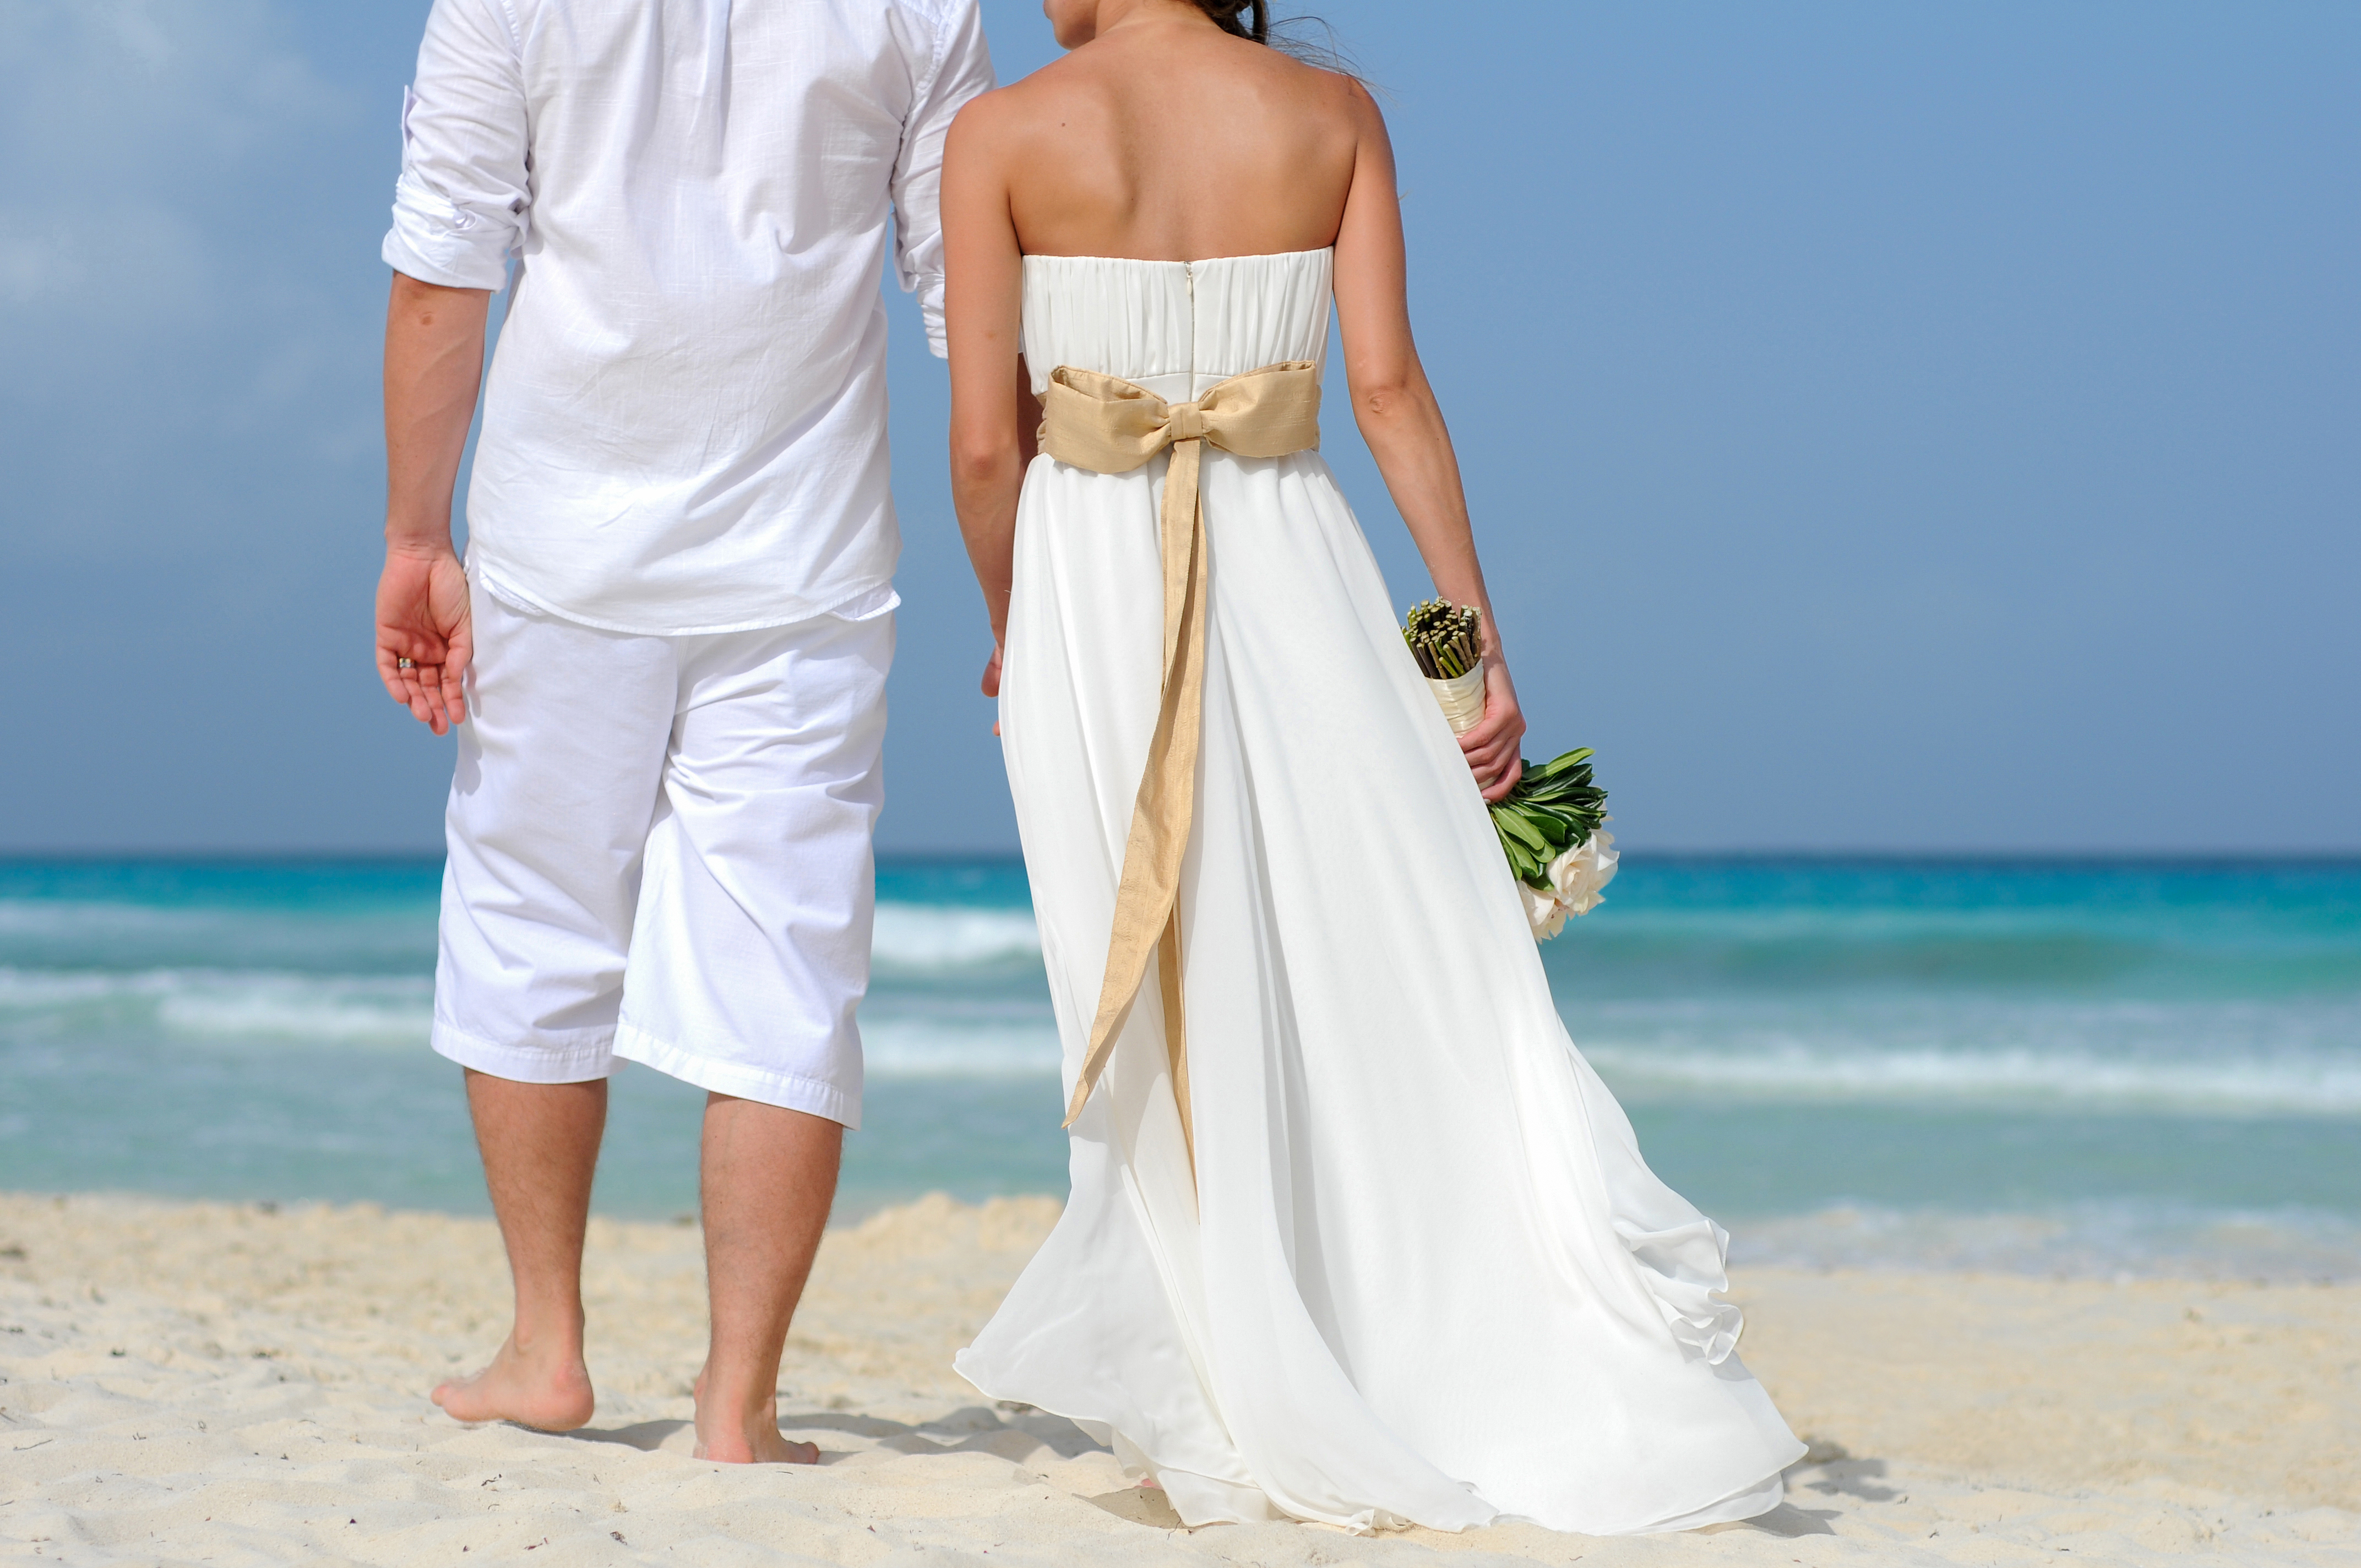 Myths about getting married overseas travel by lesley a wedding abroad isnt legal at home solutioingenieria Image collections